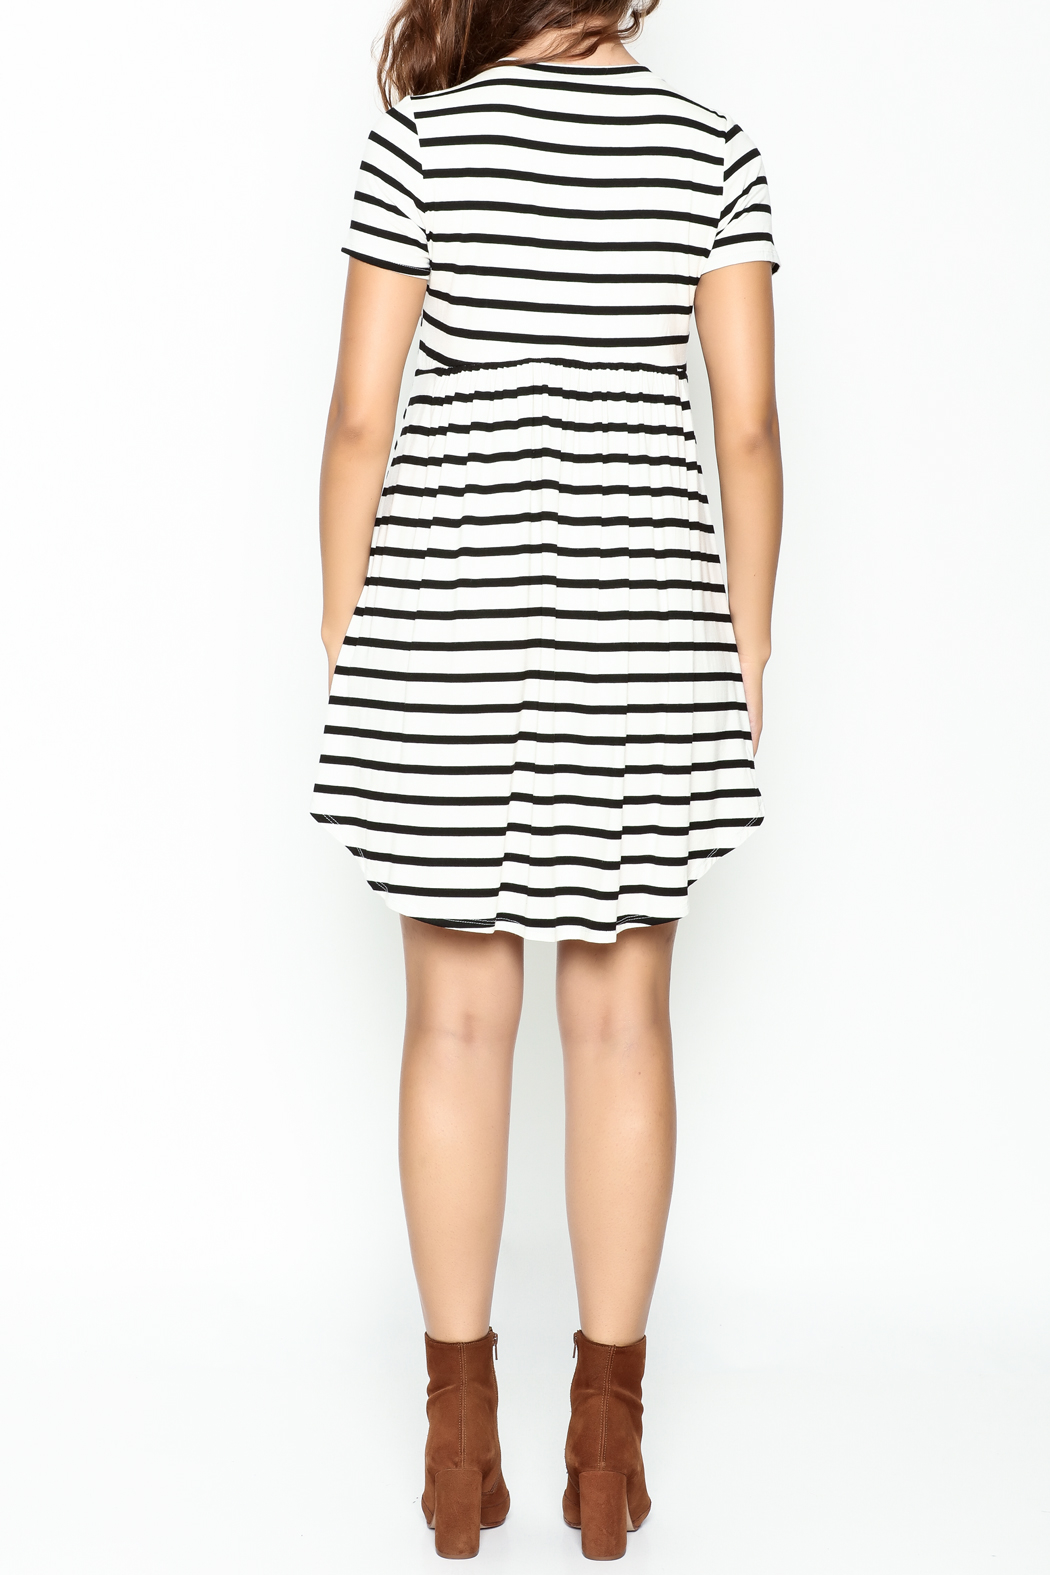 Bellamie Maddie Striped Tunic - Back Cropped Image